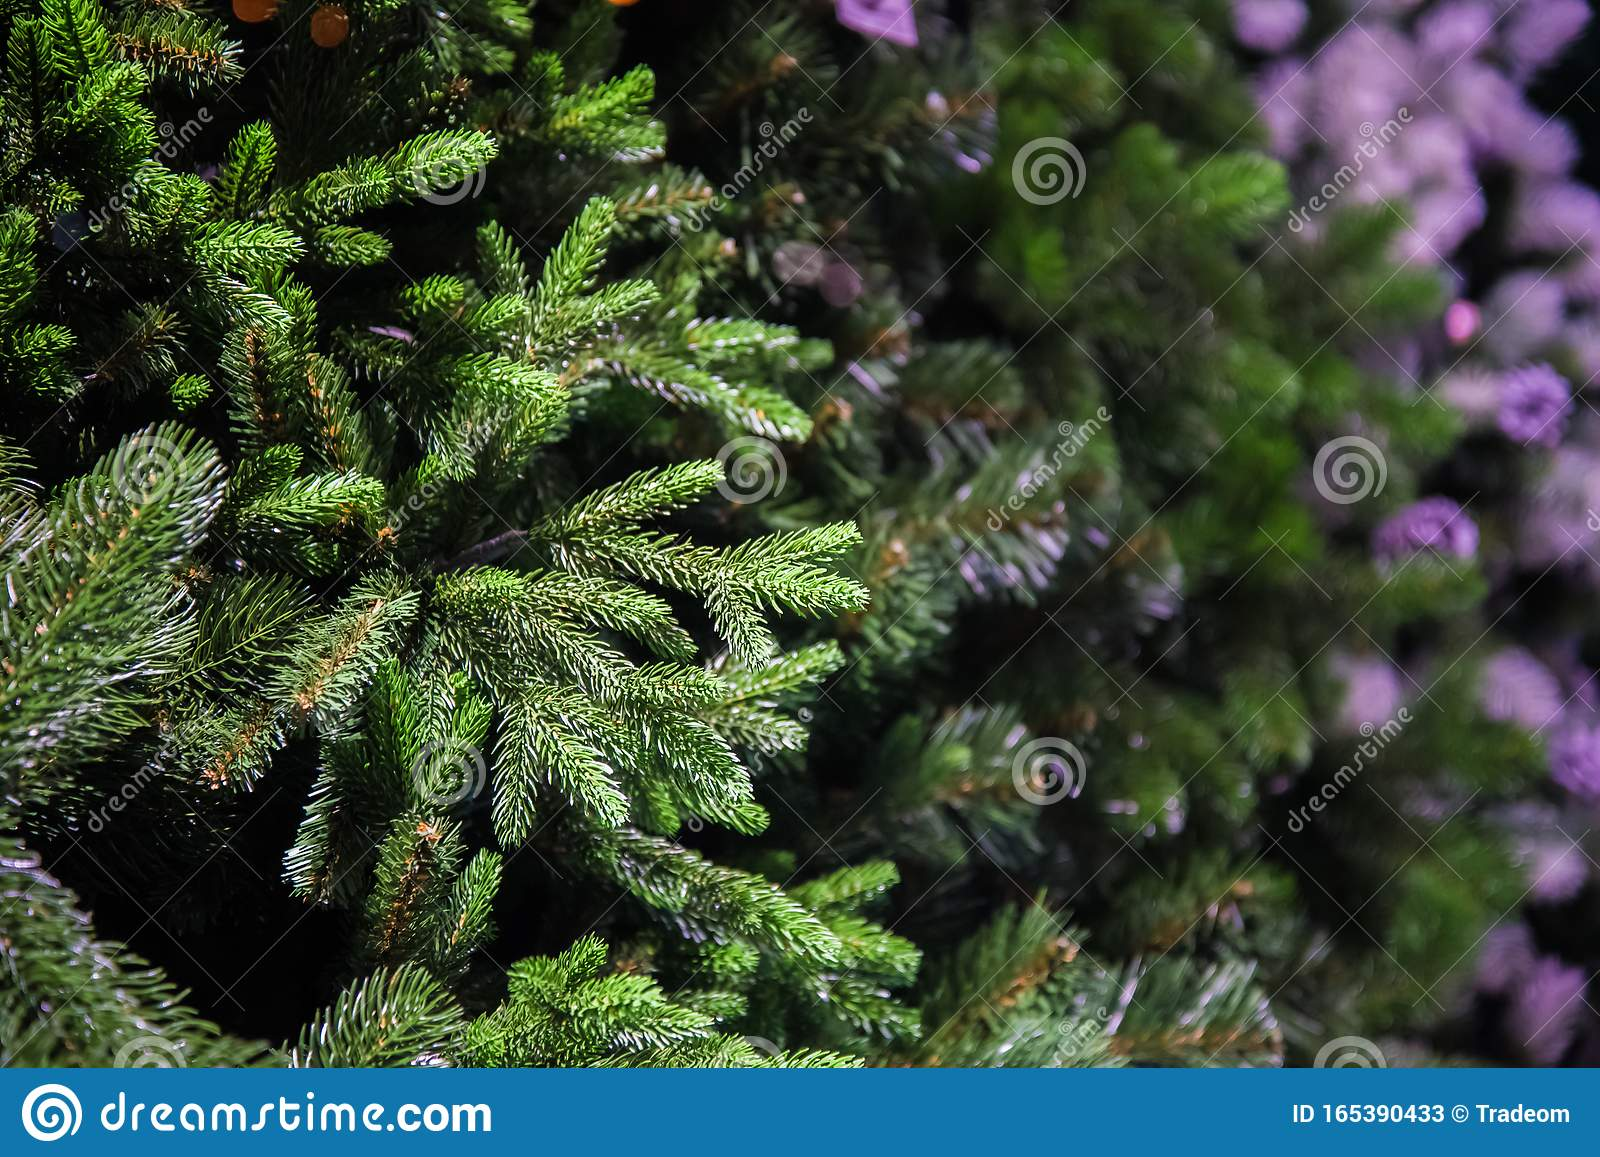 Decorative Artificial Christmas Trees In The Store. Sale ...